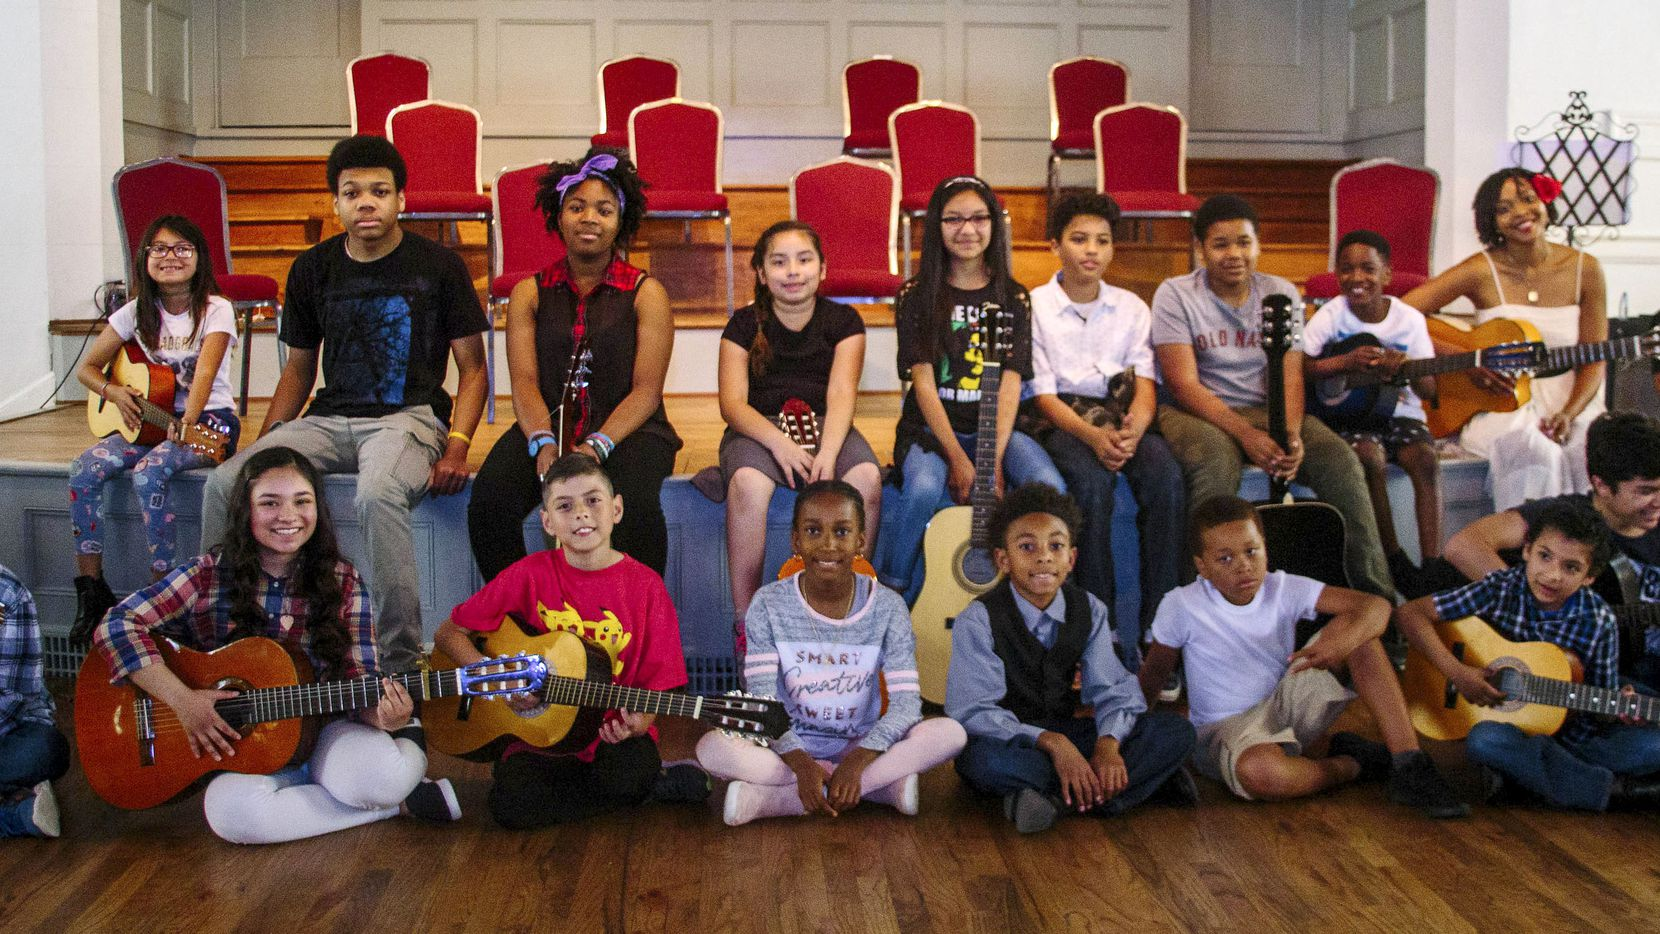 Jessica Garland (back row, second from right) teaches guitar to kids.